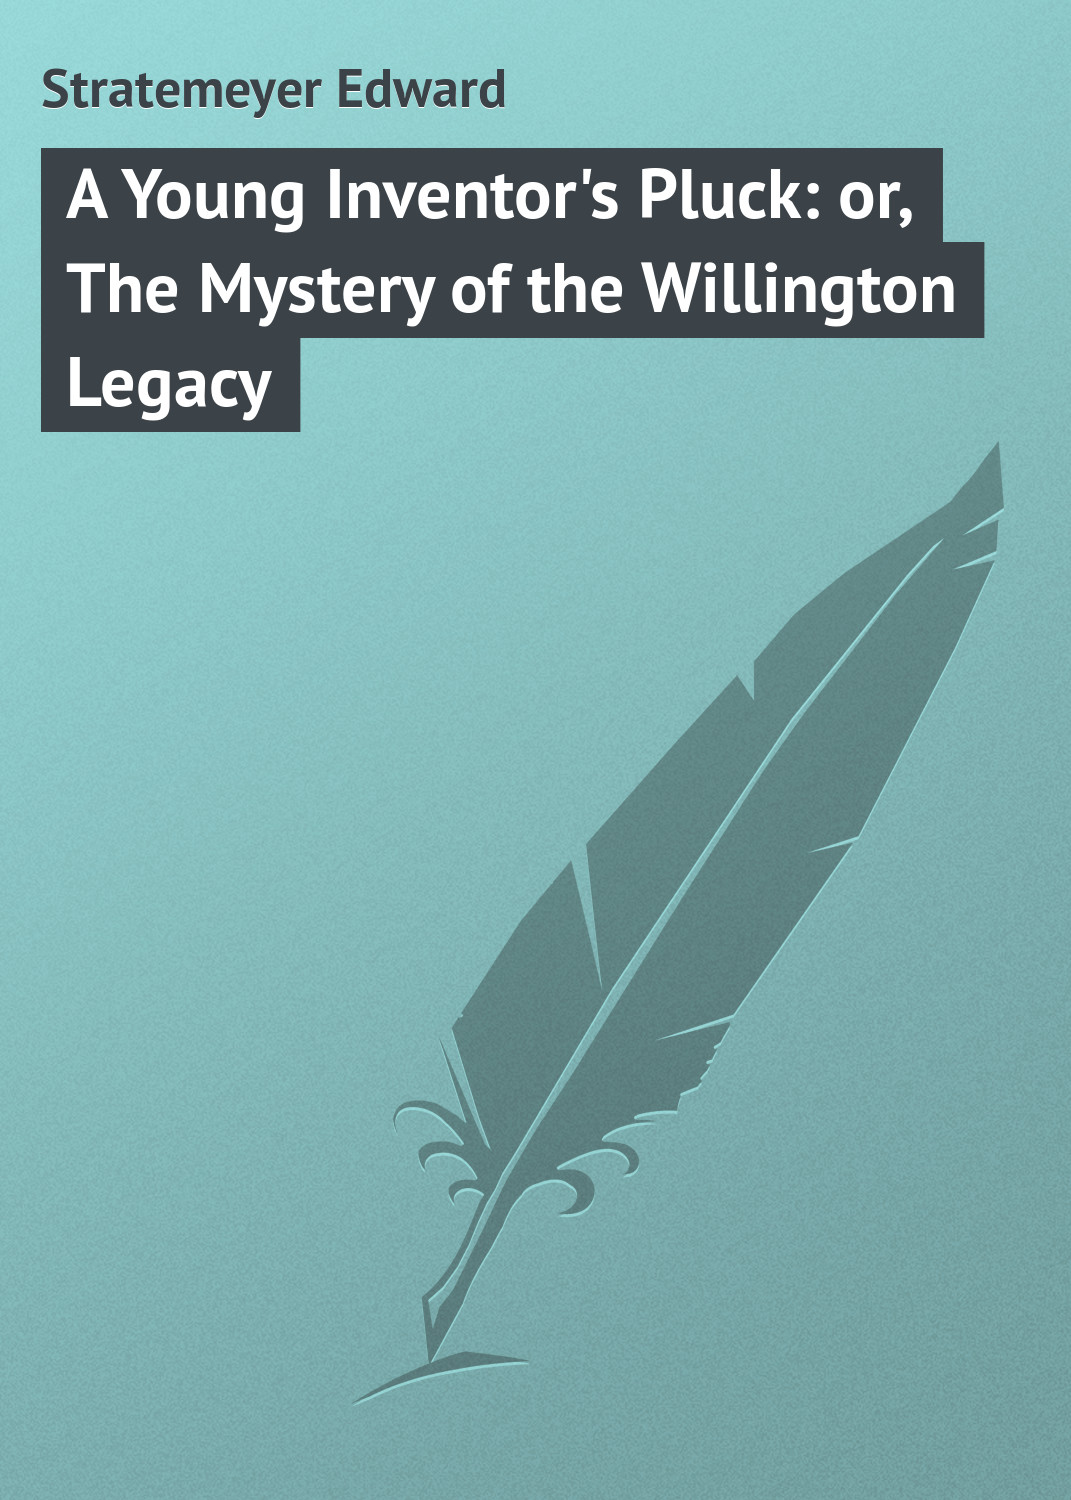 Stratemeyer Edward A Young Inventor's Pluck: or, The Mystery of the Willington Legacy cd various artists the legacy of electronic funk